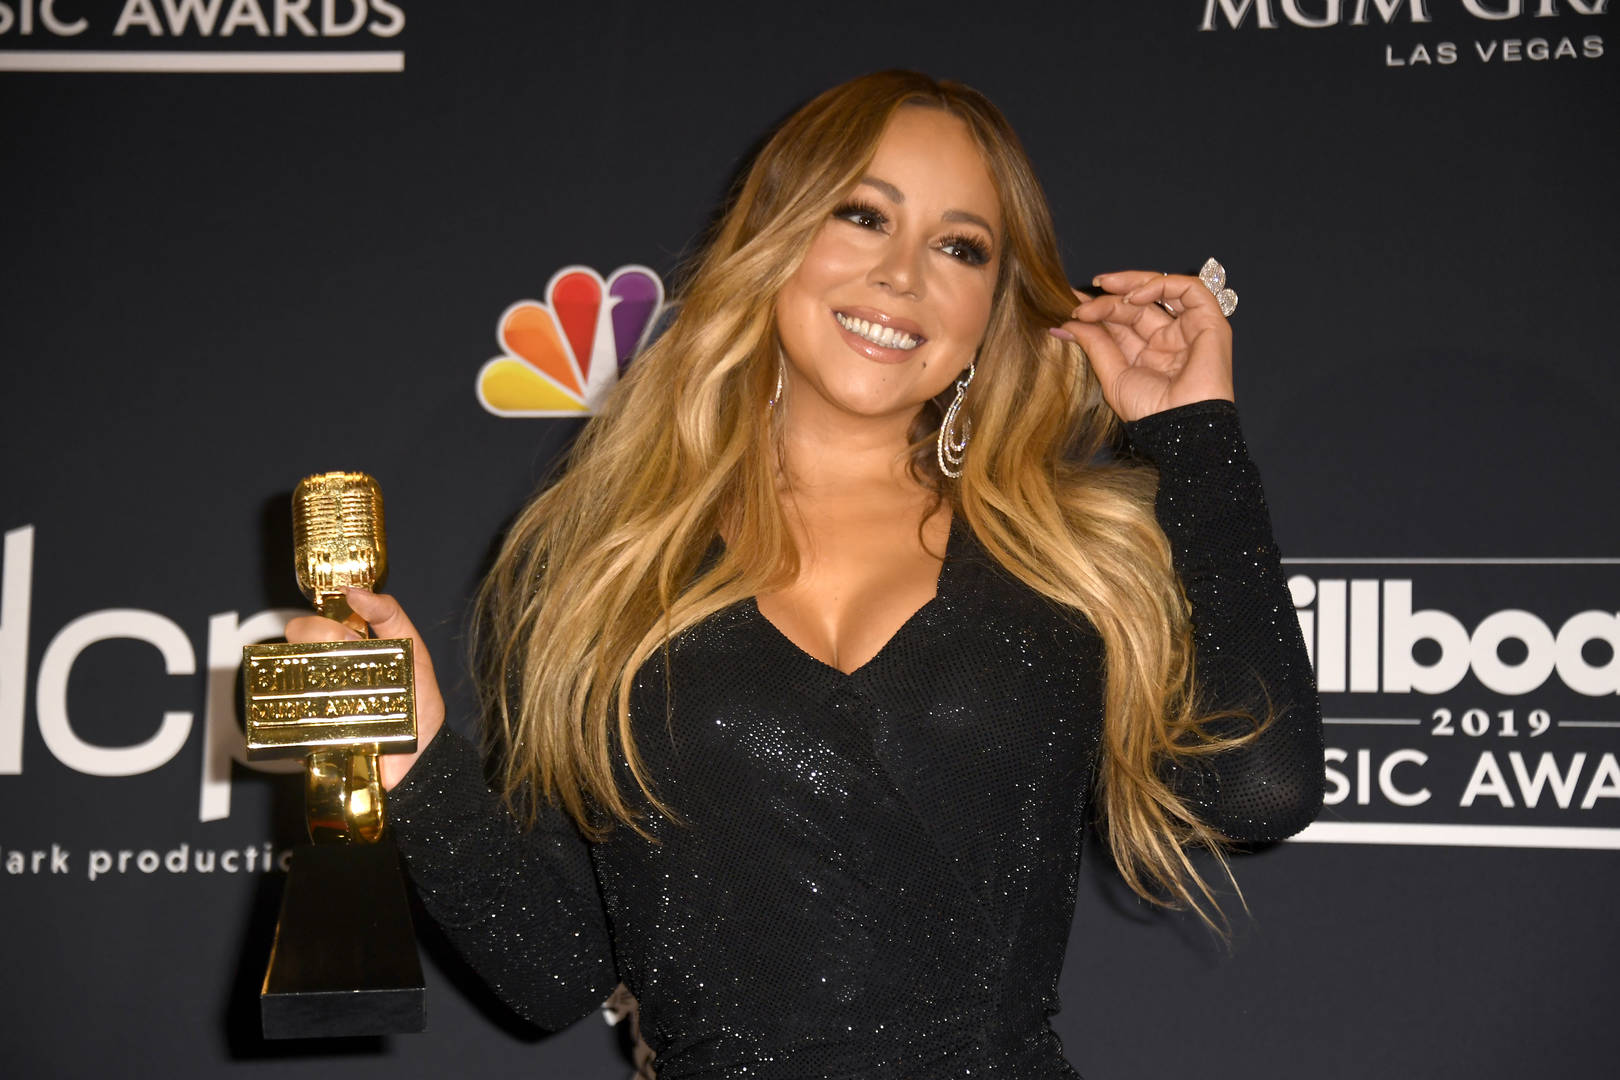 Mariah Carey breaks 3 Guinness records with 'All I Want for Christmas'